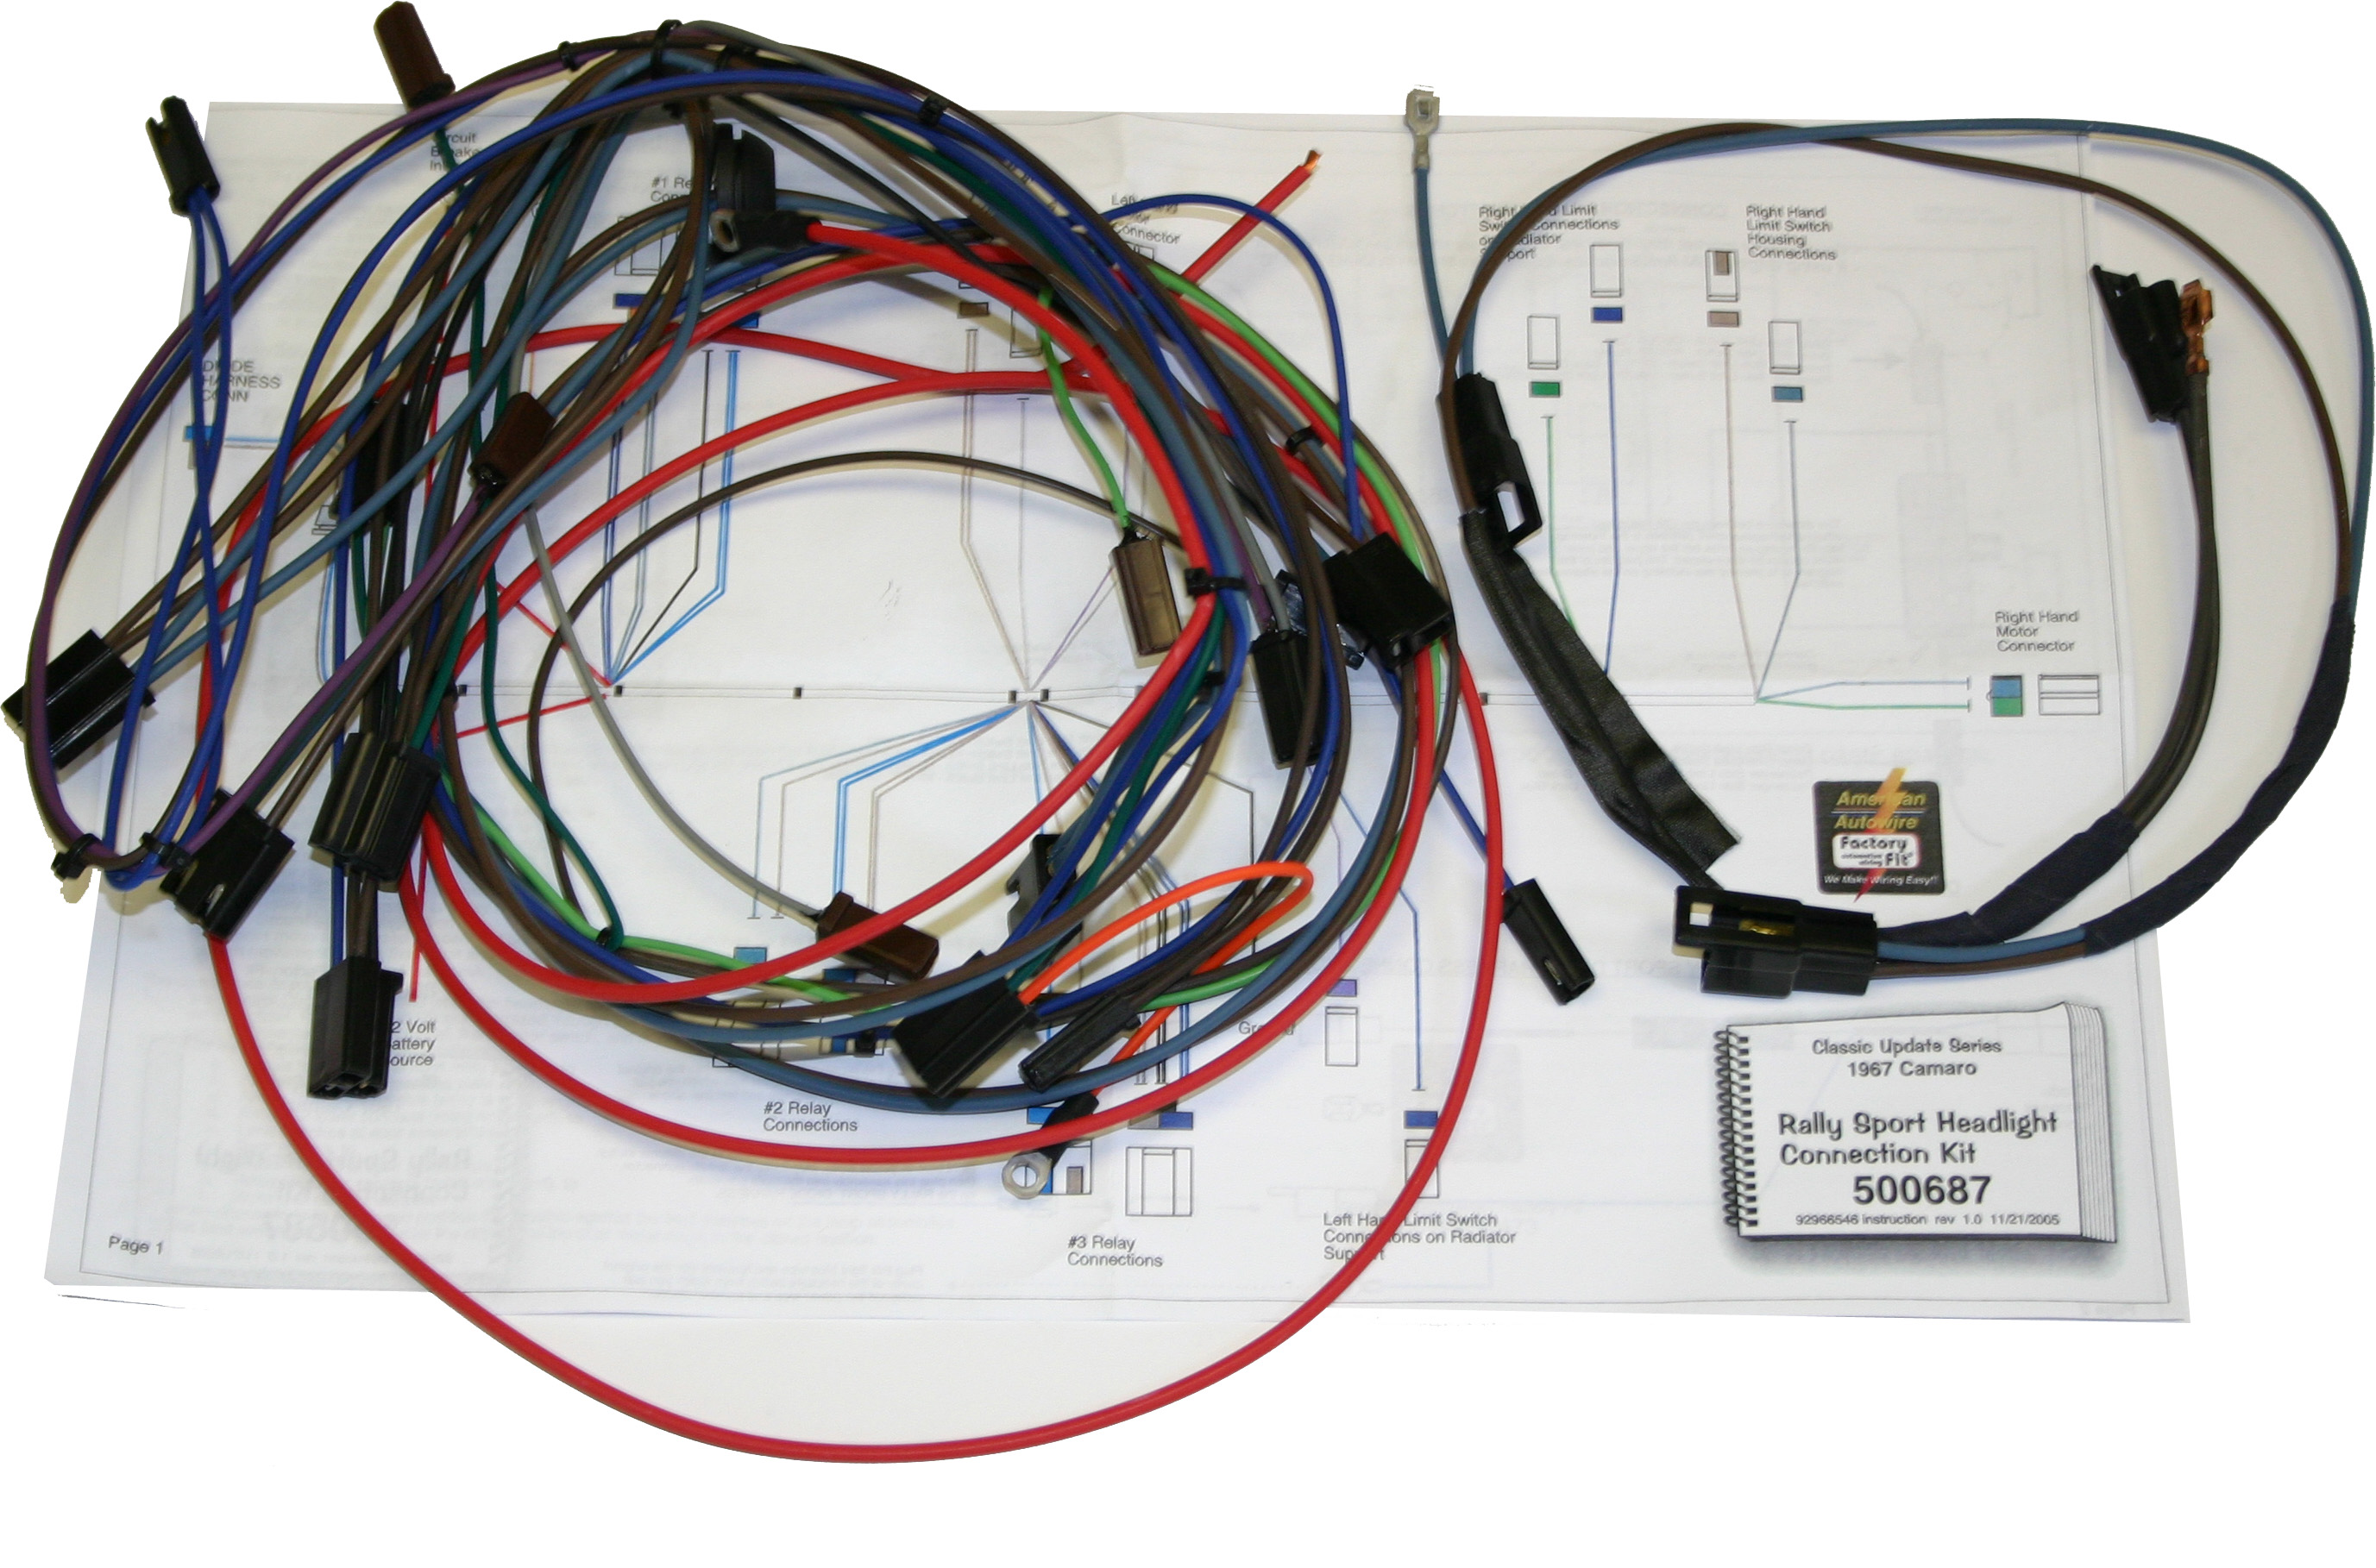 500773 67 68 camaro firebird classic update wiring harness 500661 1969 camaro engine wiring harness at readyjetset.co